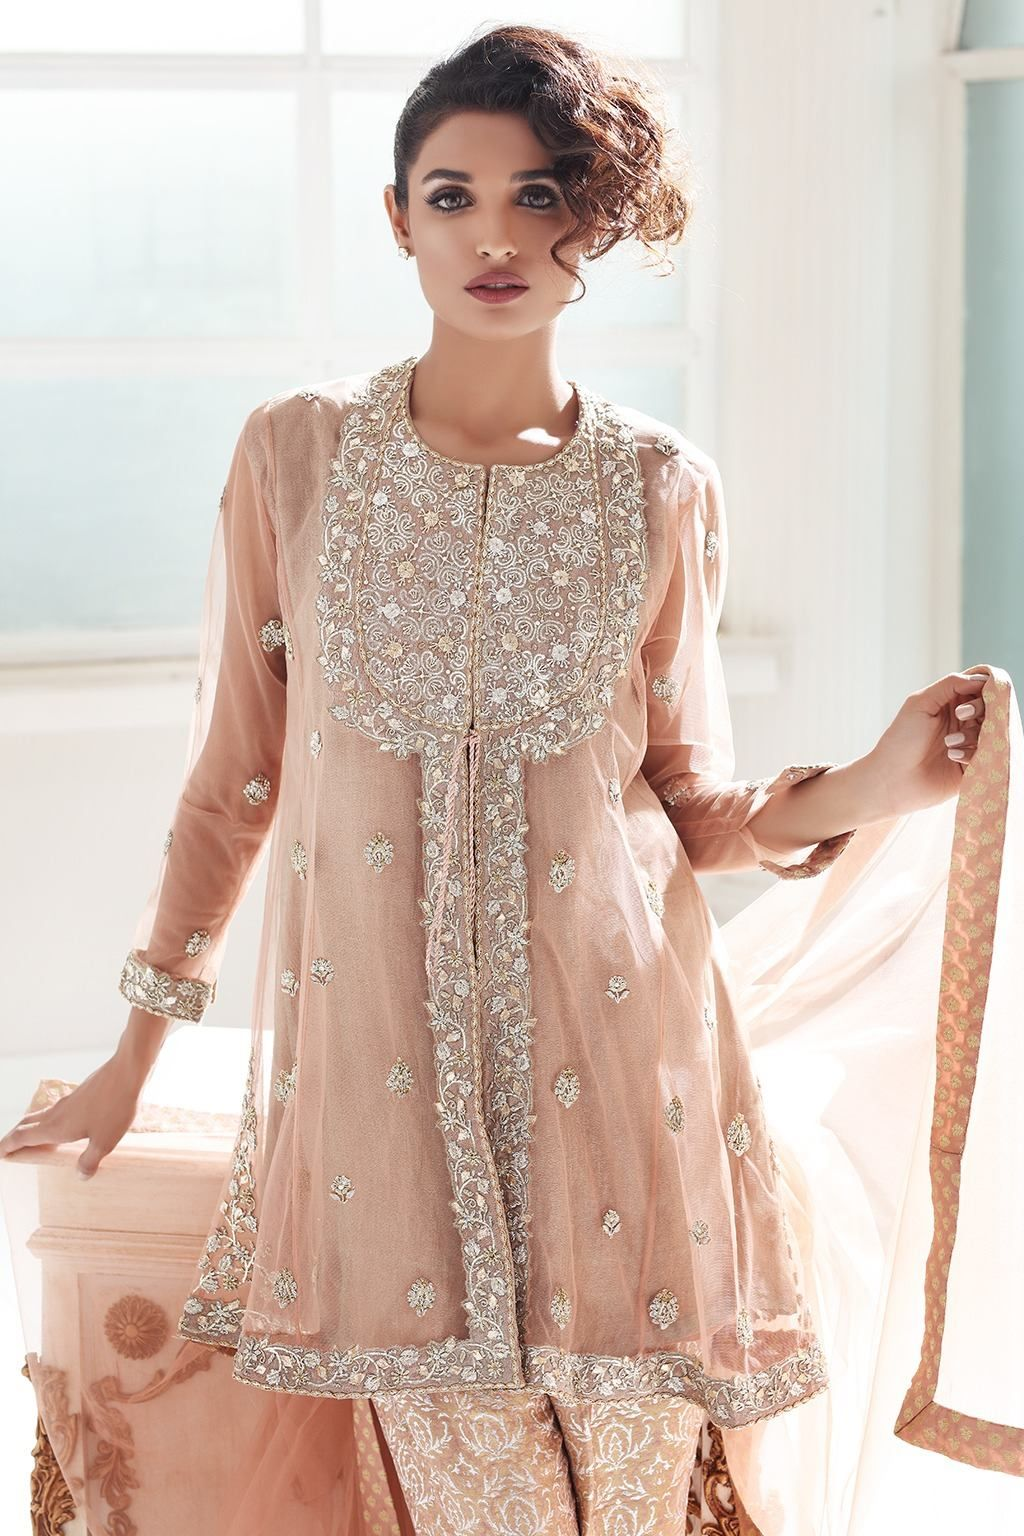 924e2f07c0 Check the new Pakistani net frocks and gowns with price. Get designer party  dress in affordable prices from collection of net frocks